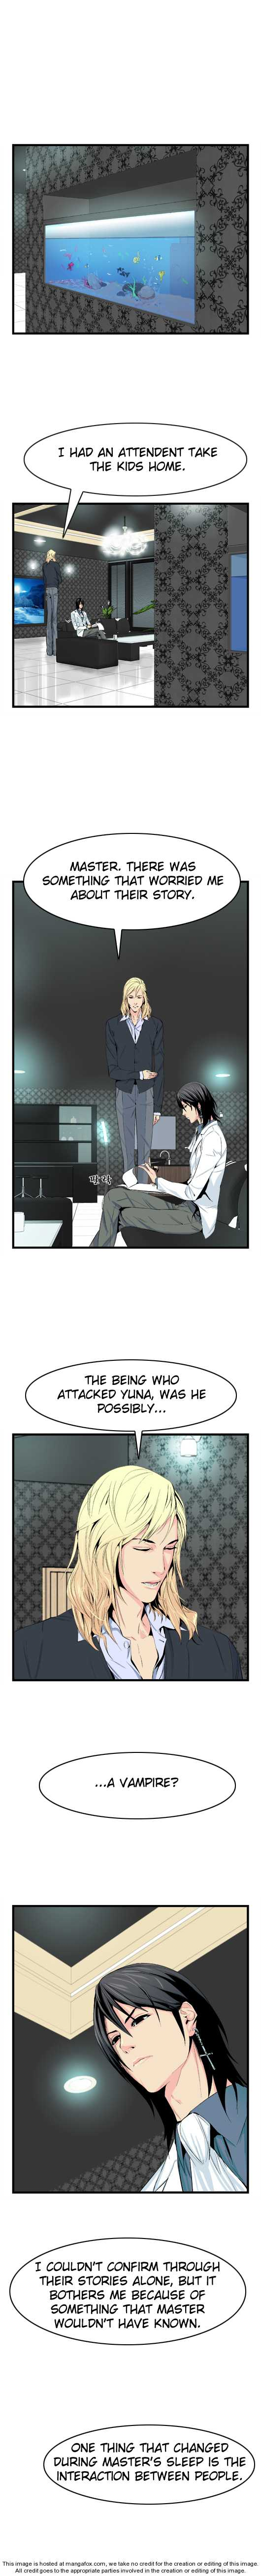 Noblesse 18 Page 3